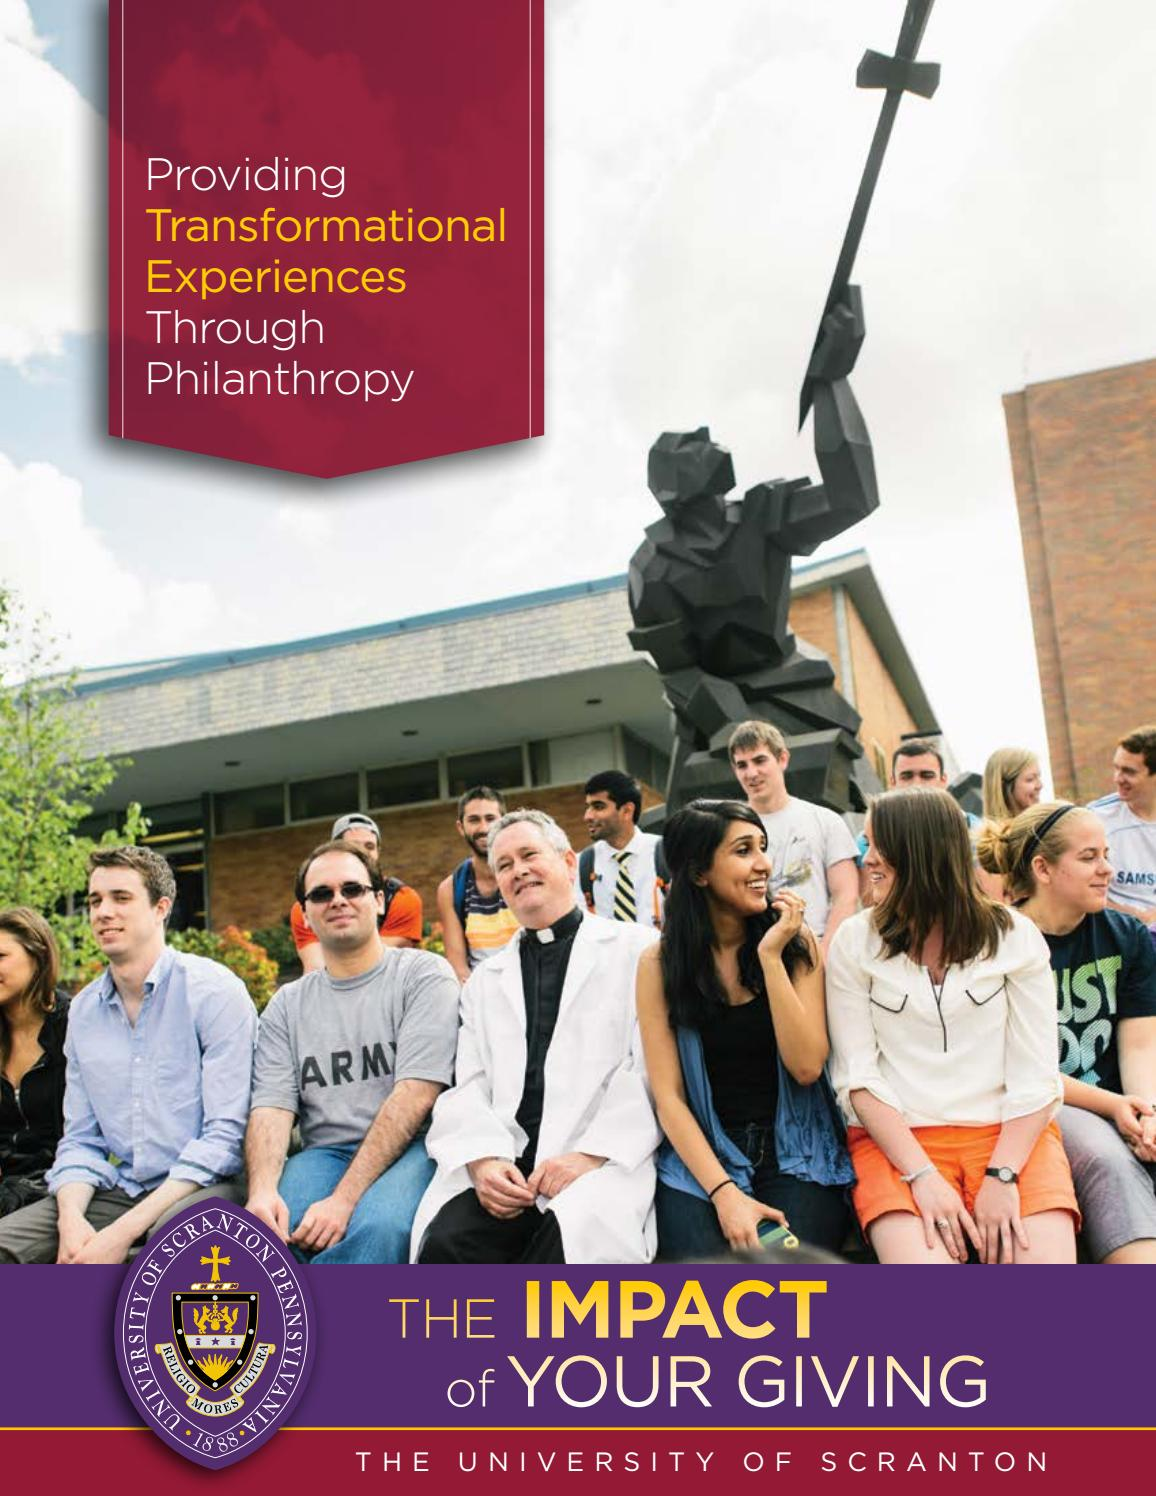 The University Of Scranton 2017 Philanthropy Impact Report & Annual